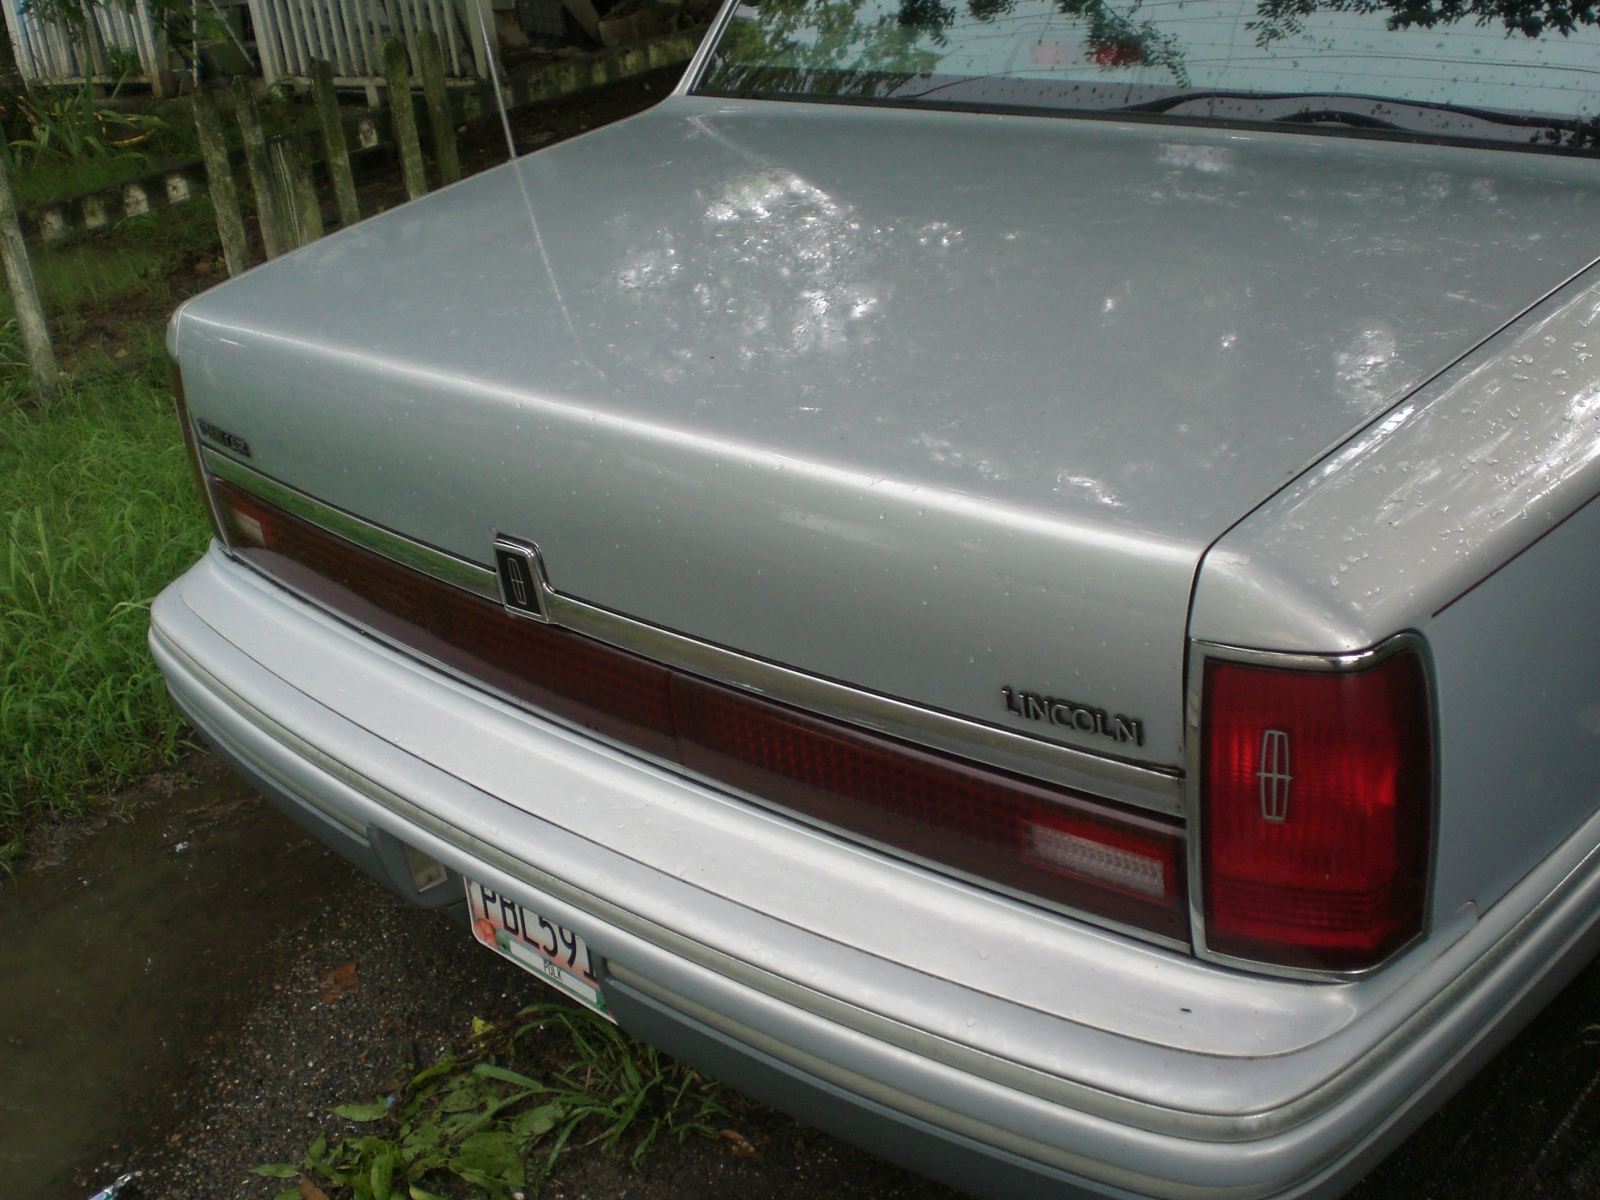 1994 Lincoln Town Car 4 Dr Cartier Sedan picture